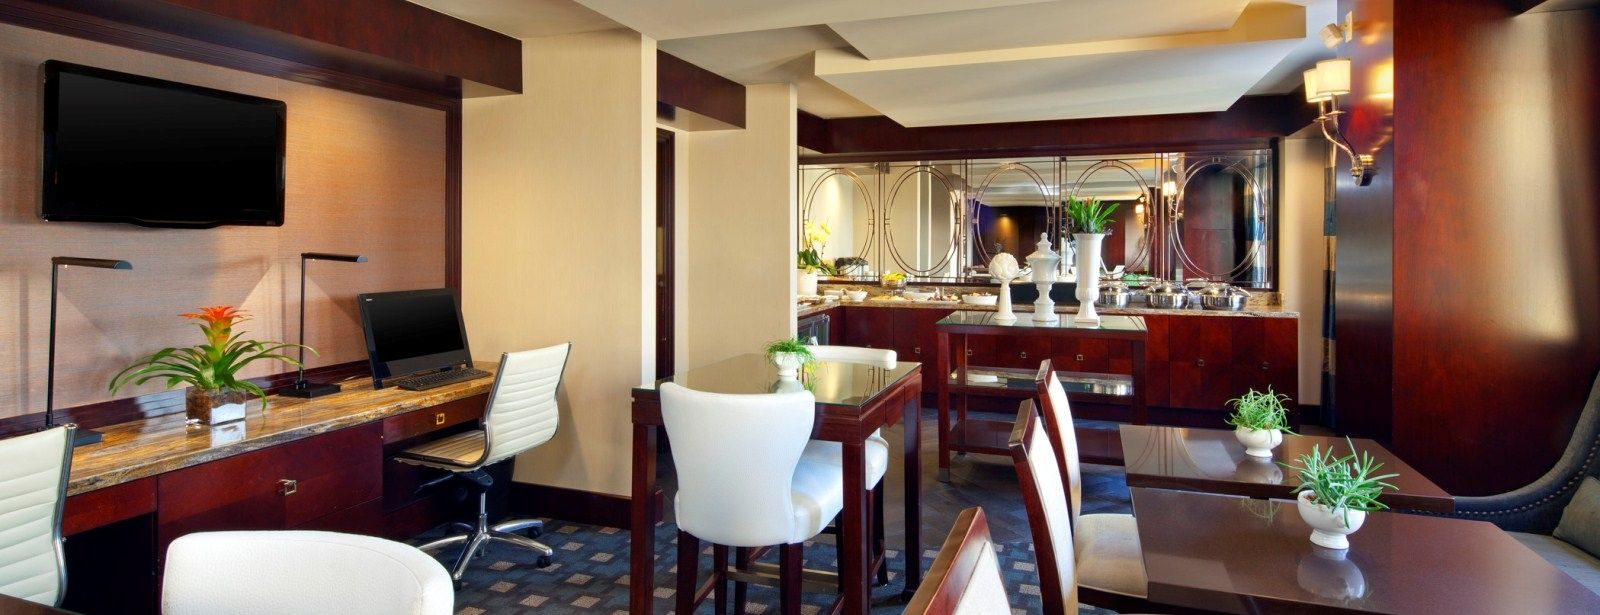 Club Suites | Sheraton Fairplex Hotel & Conference Center